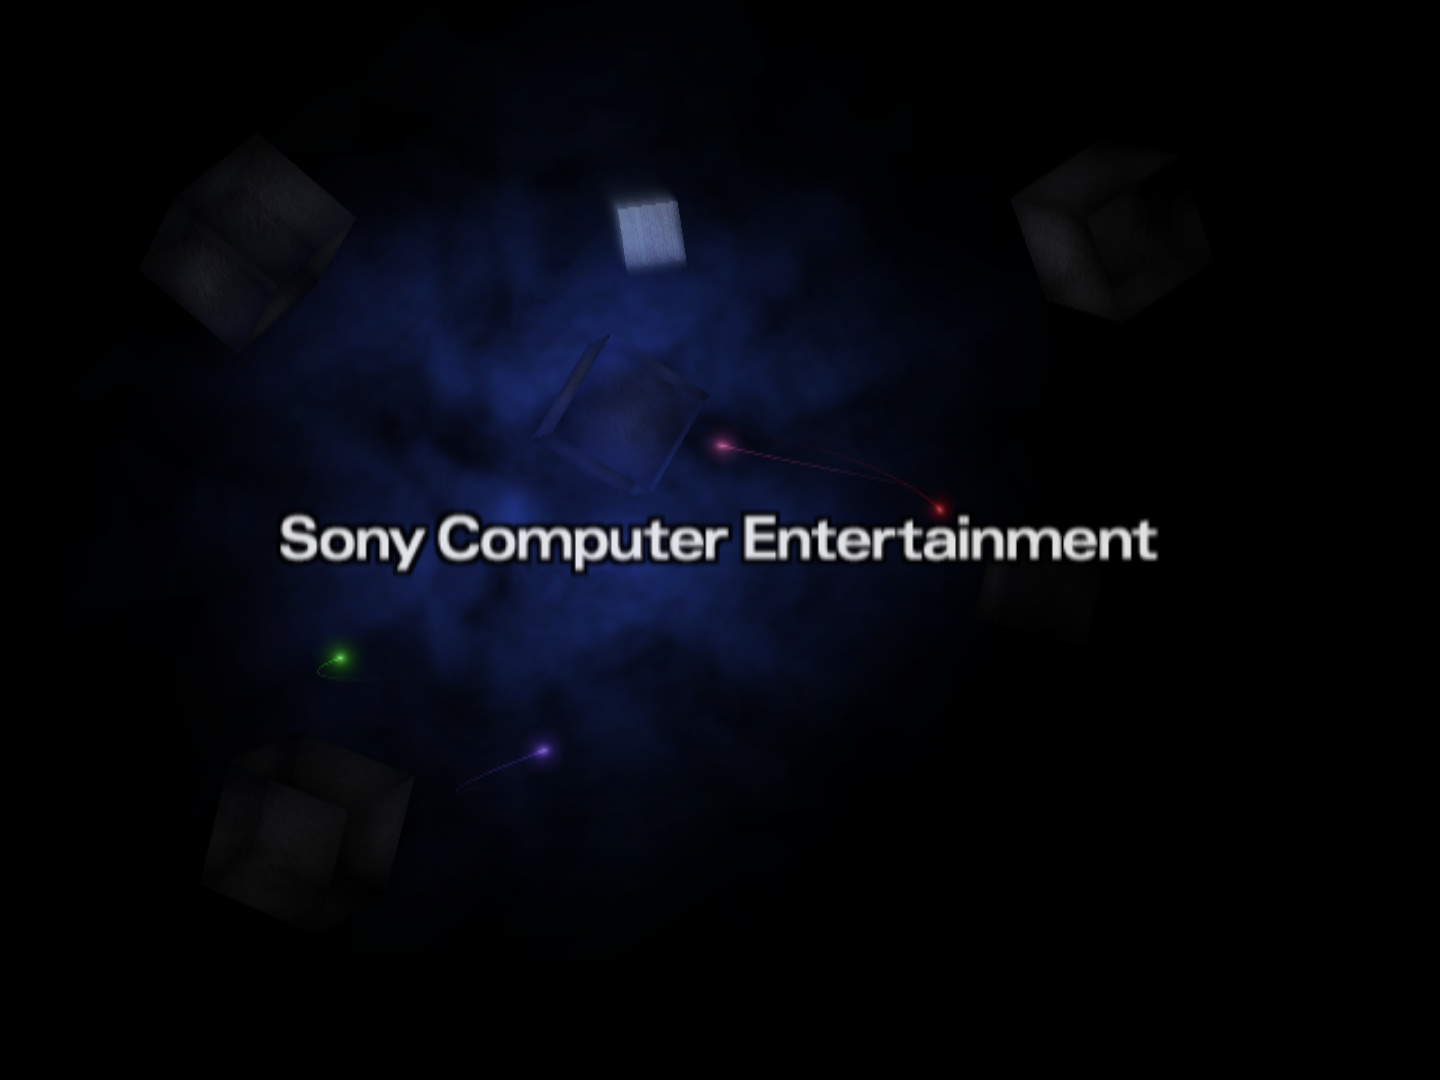 Sony Computer Entertainment Boot (2000)